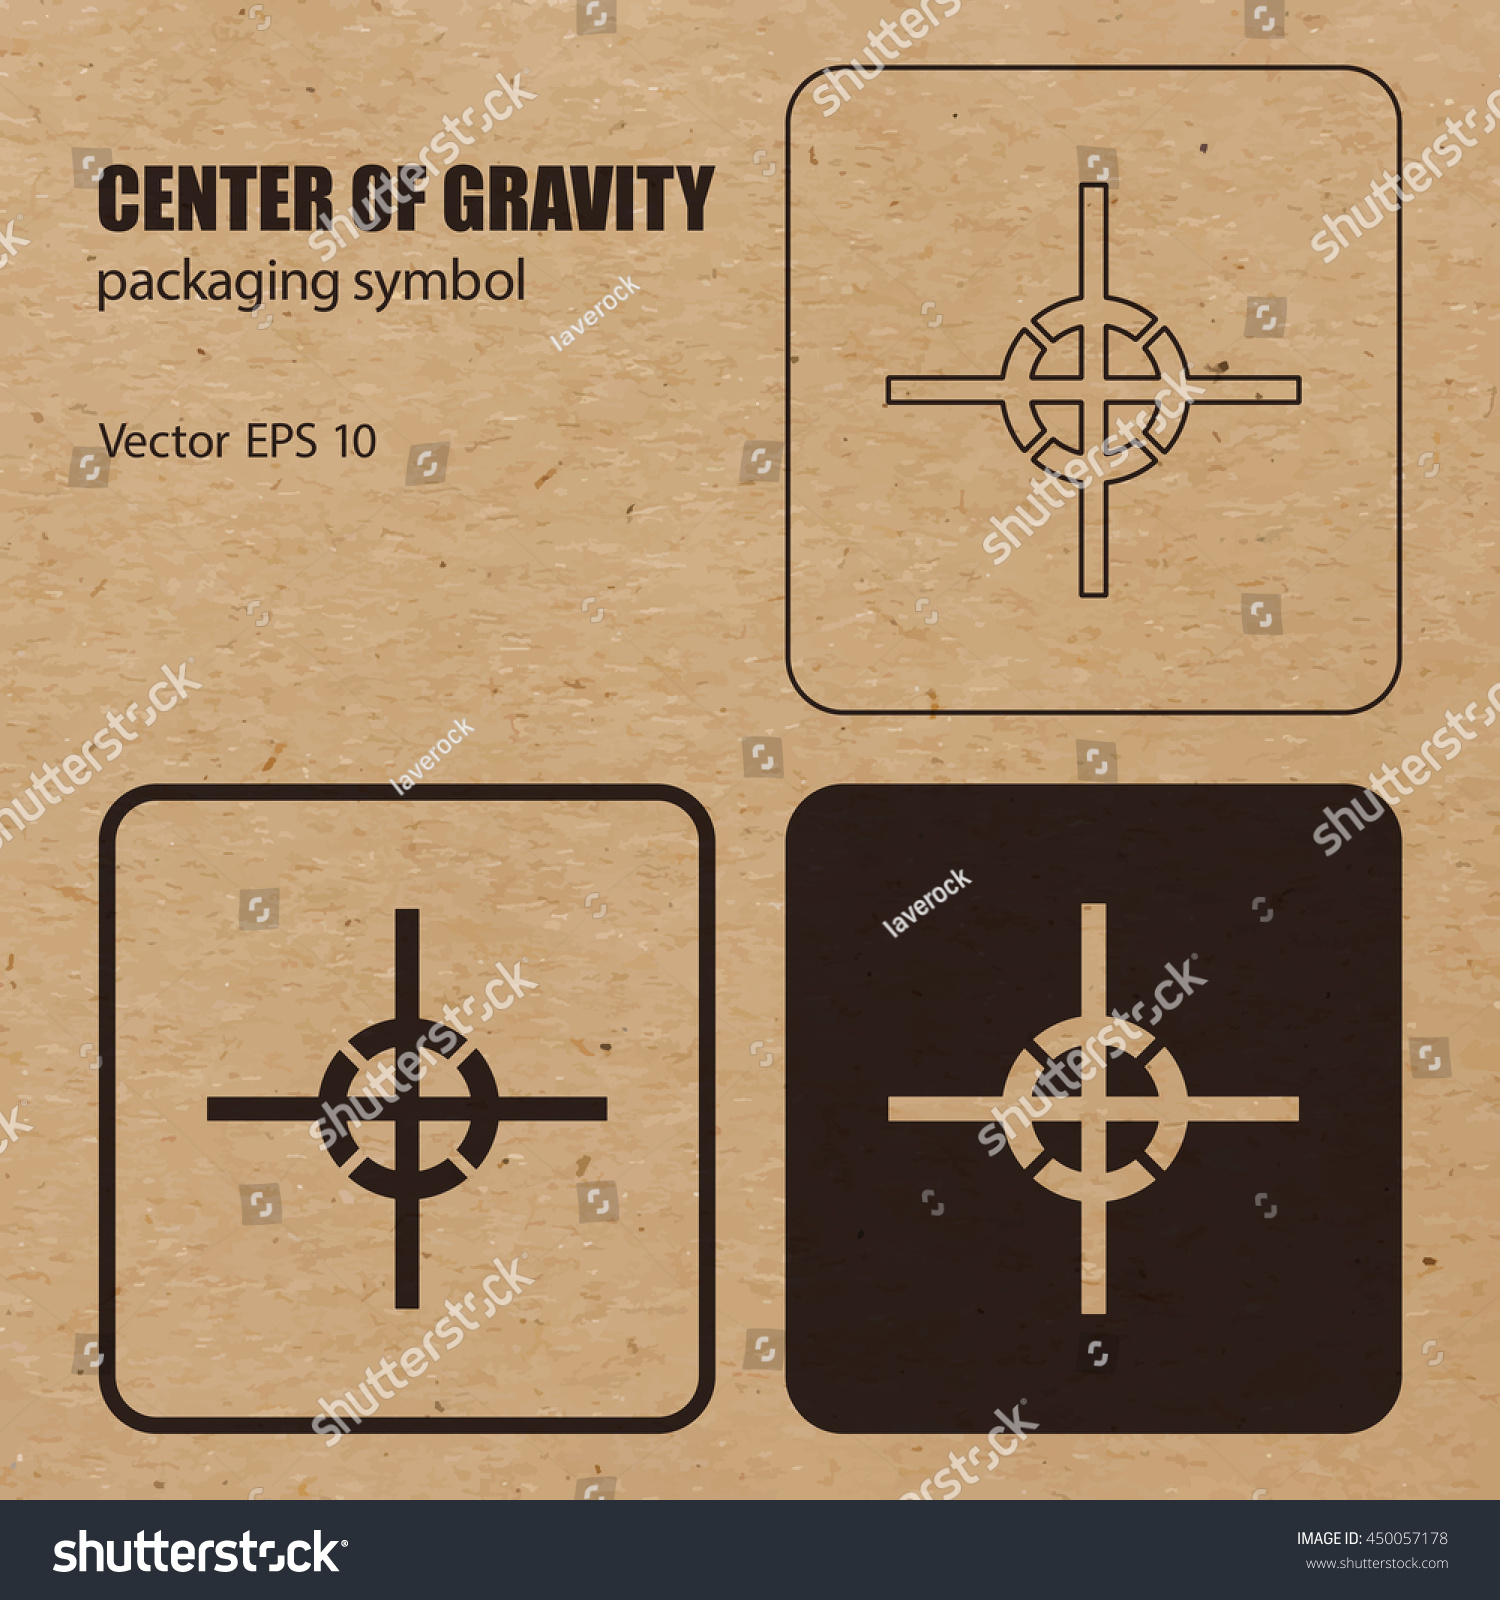 Center Gravity Vector Packaging Symbol On Stock Vector Royalty Free